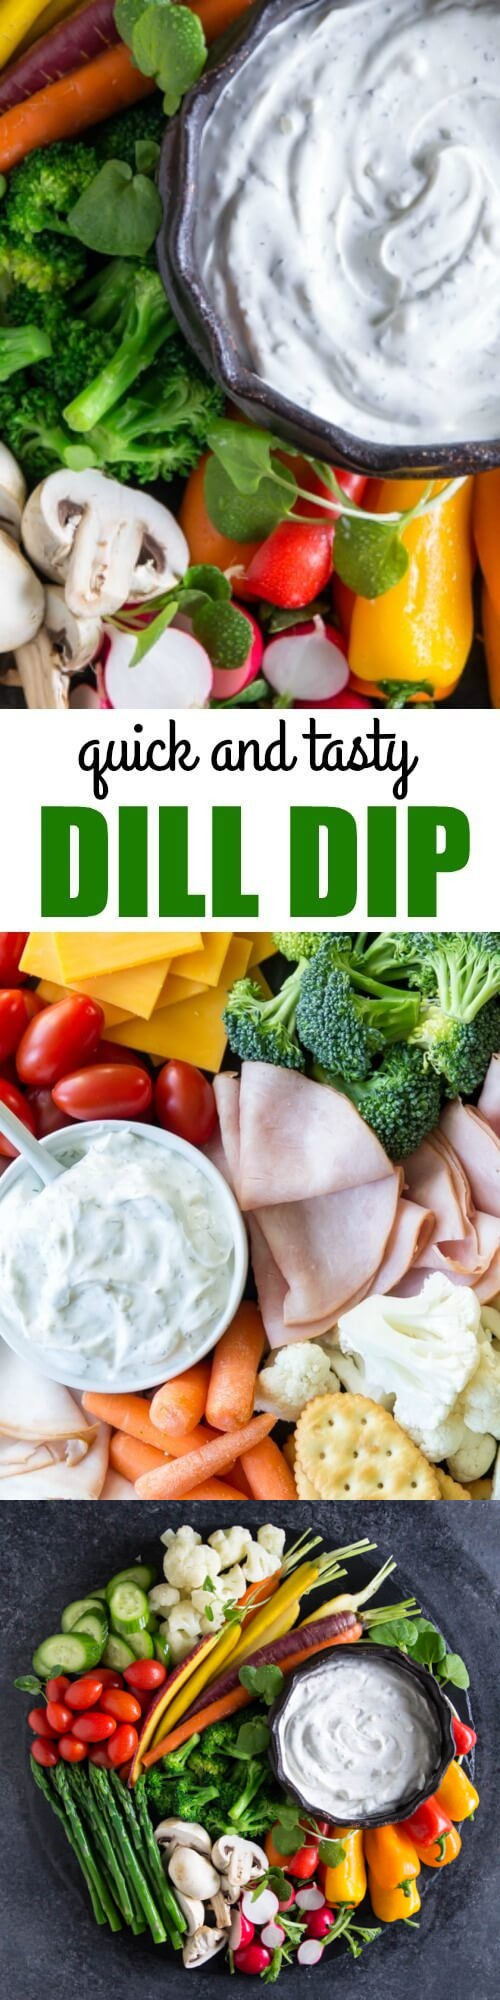 Easy Dill Dip